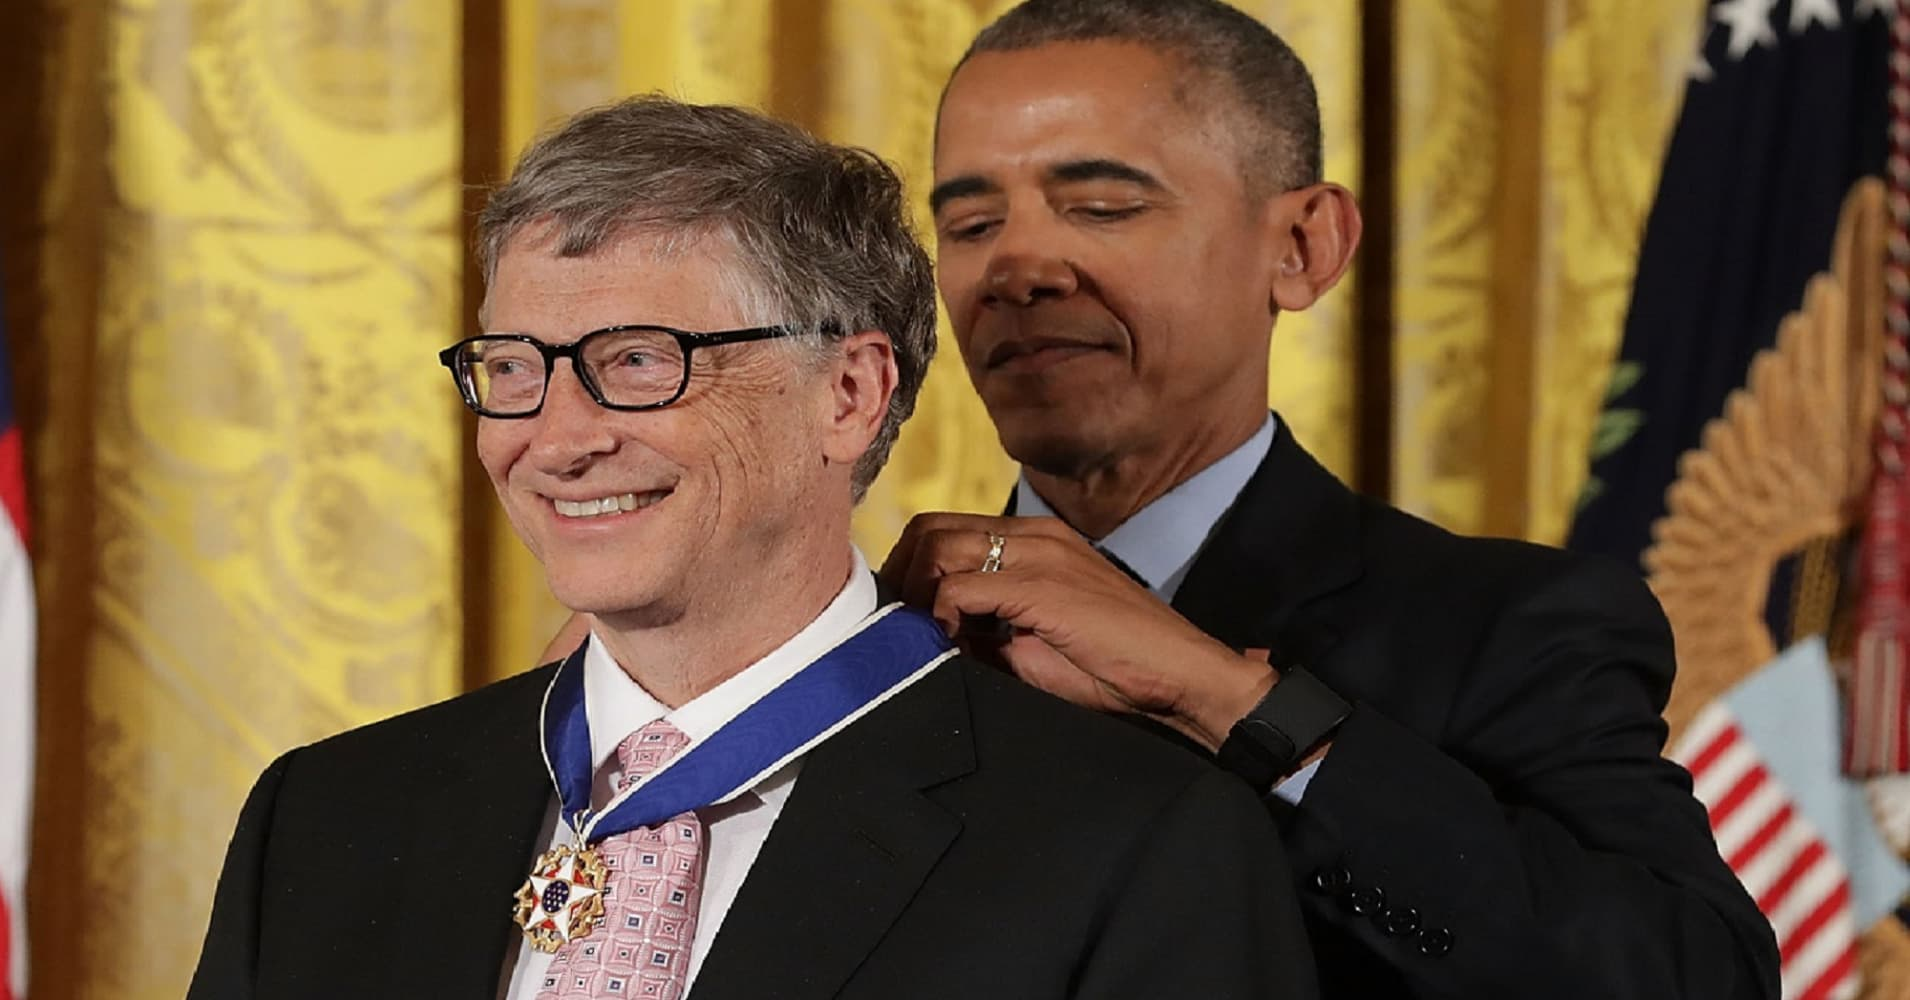 President Barack Obama awards the Presidential Medal of Freedom to Microsoft founder Bill Gates and his wife Melinda Gates, who have donated billions of dollars globally to promote health and fight poverty, during a ceremony in the East Room of the White House November 22, 2016 in Washington, DC.